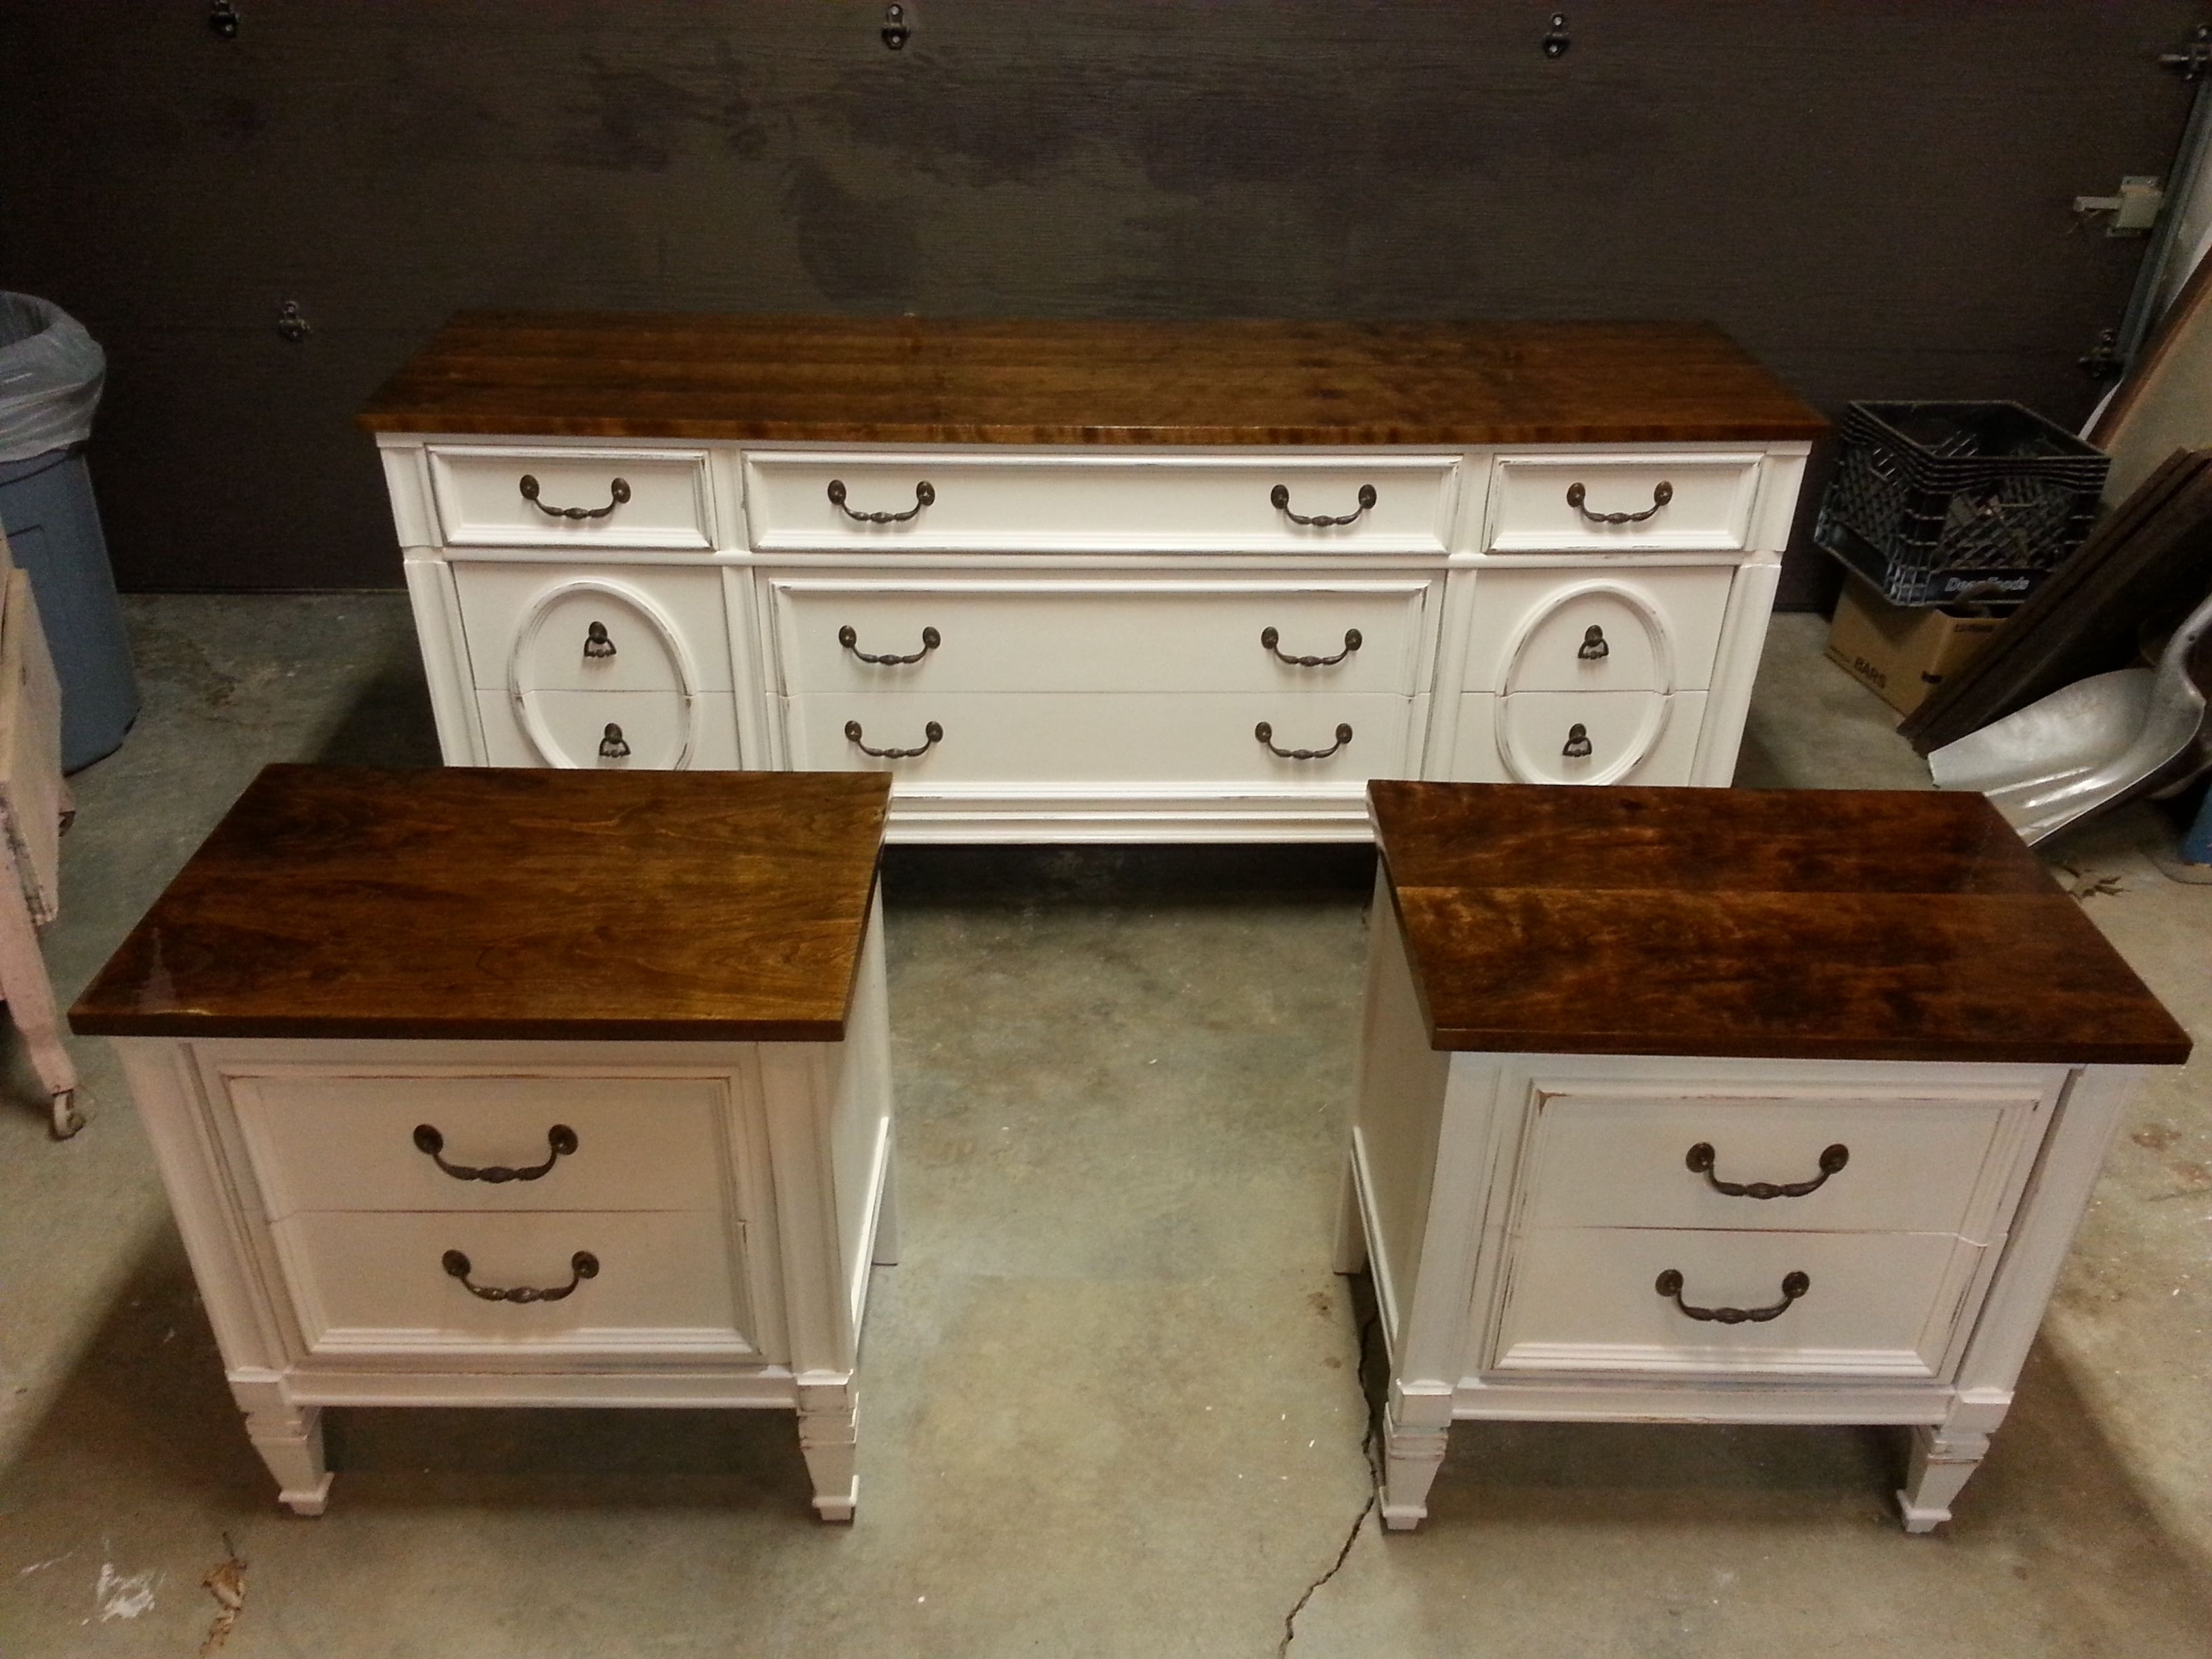 Vintage Bassett Dresser And Night Stand Set Painted Antique White